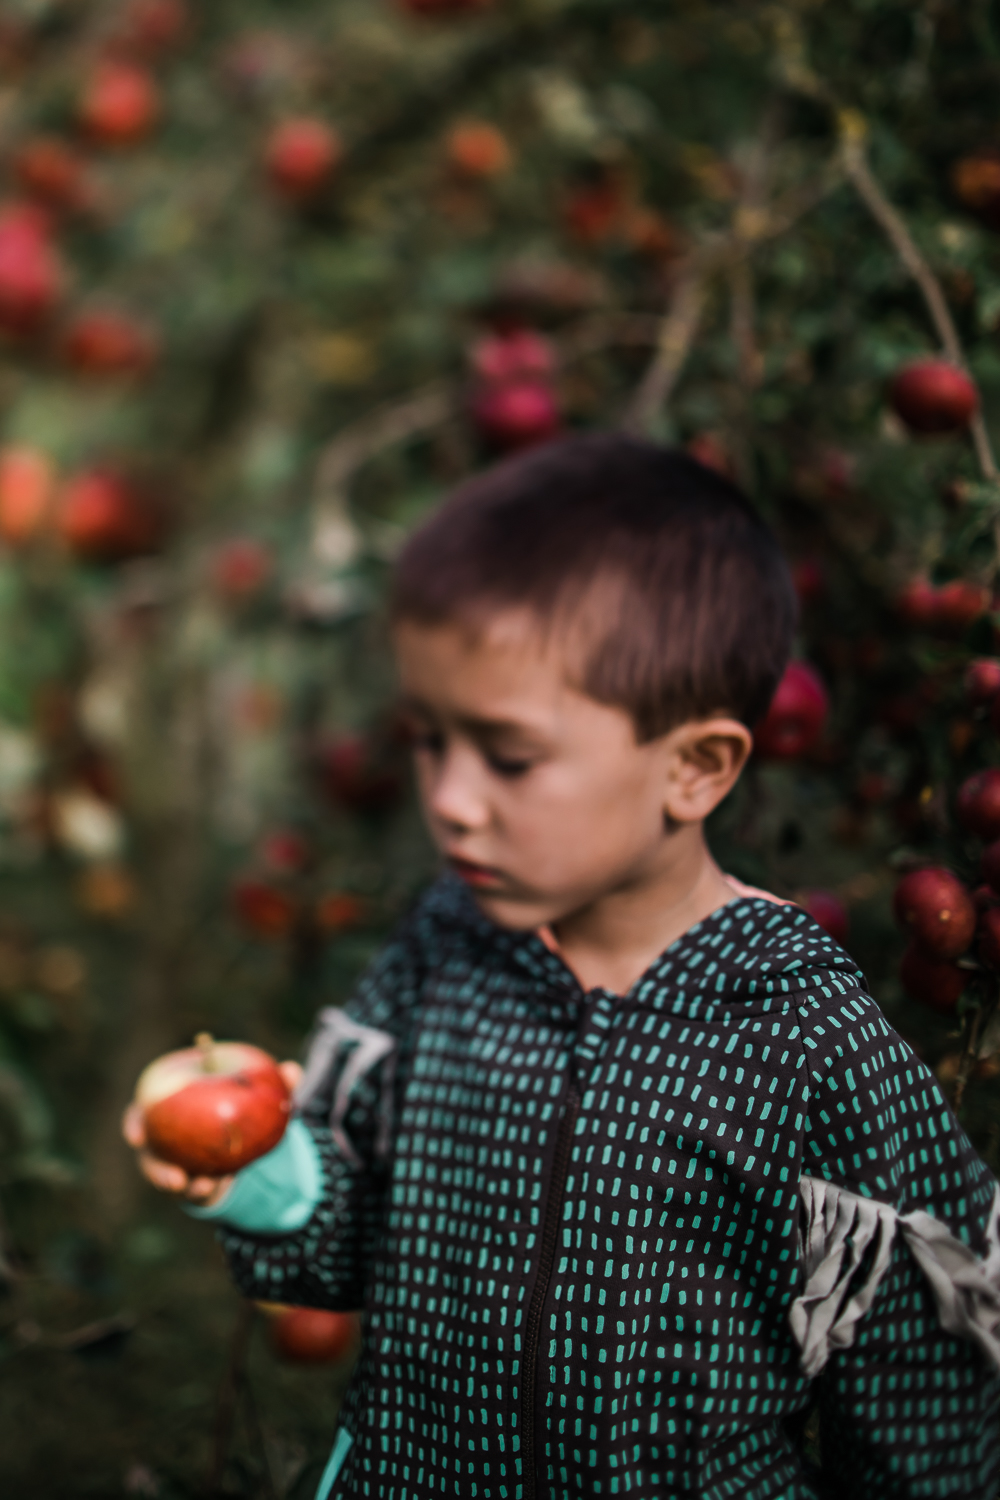 Freelensing - Free 52 project - Sept Oct 17 - Diana Hagues Photography-24.jpg